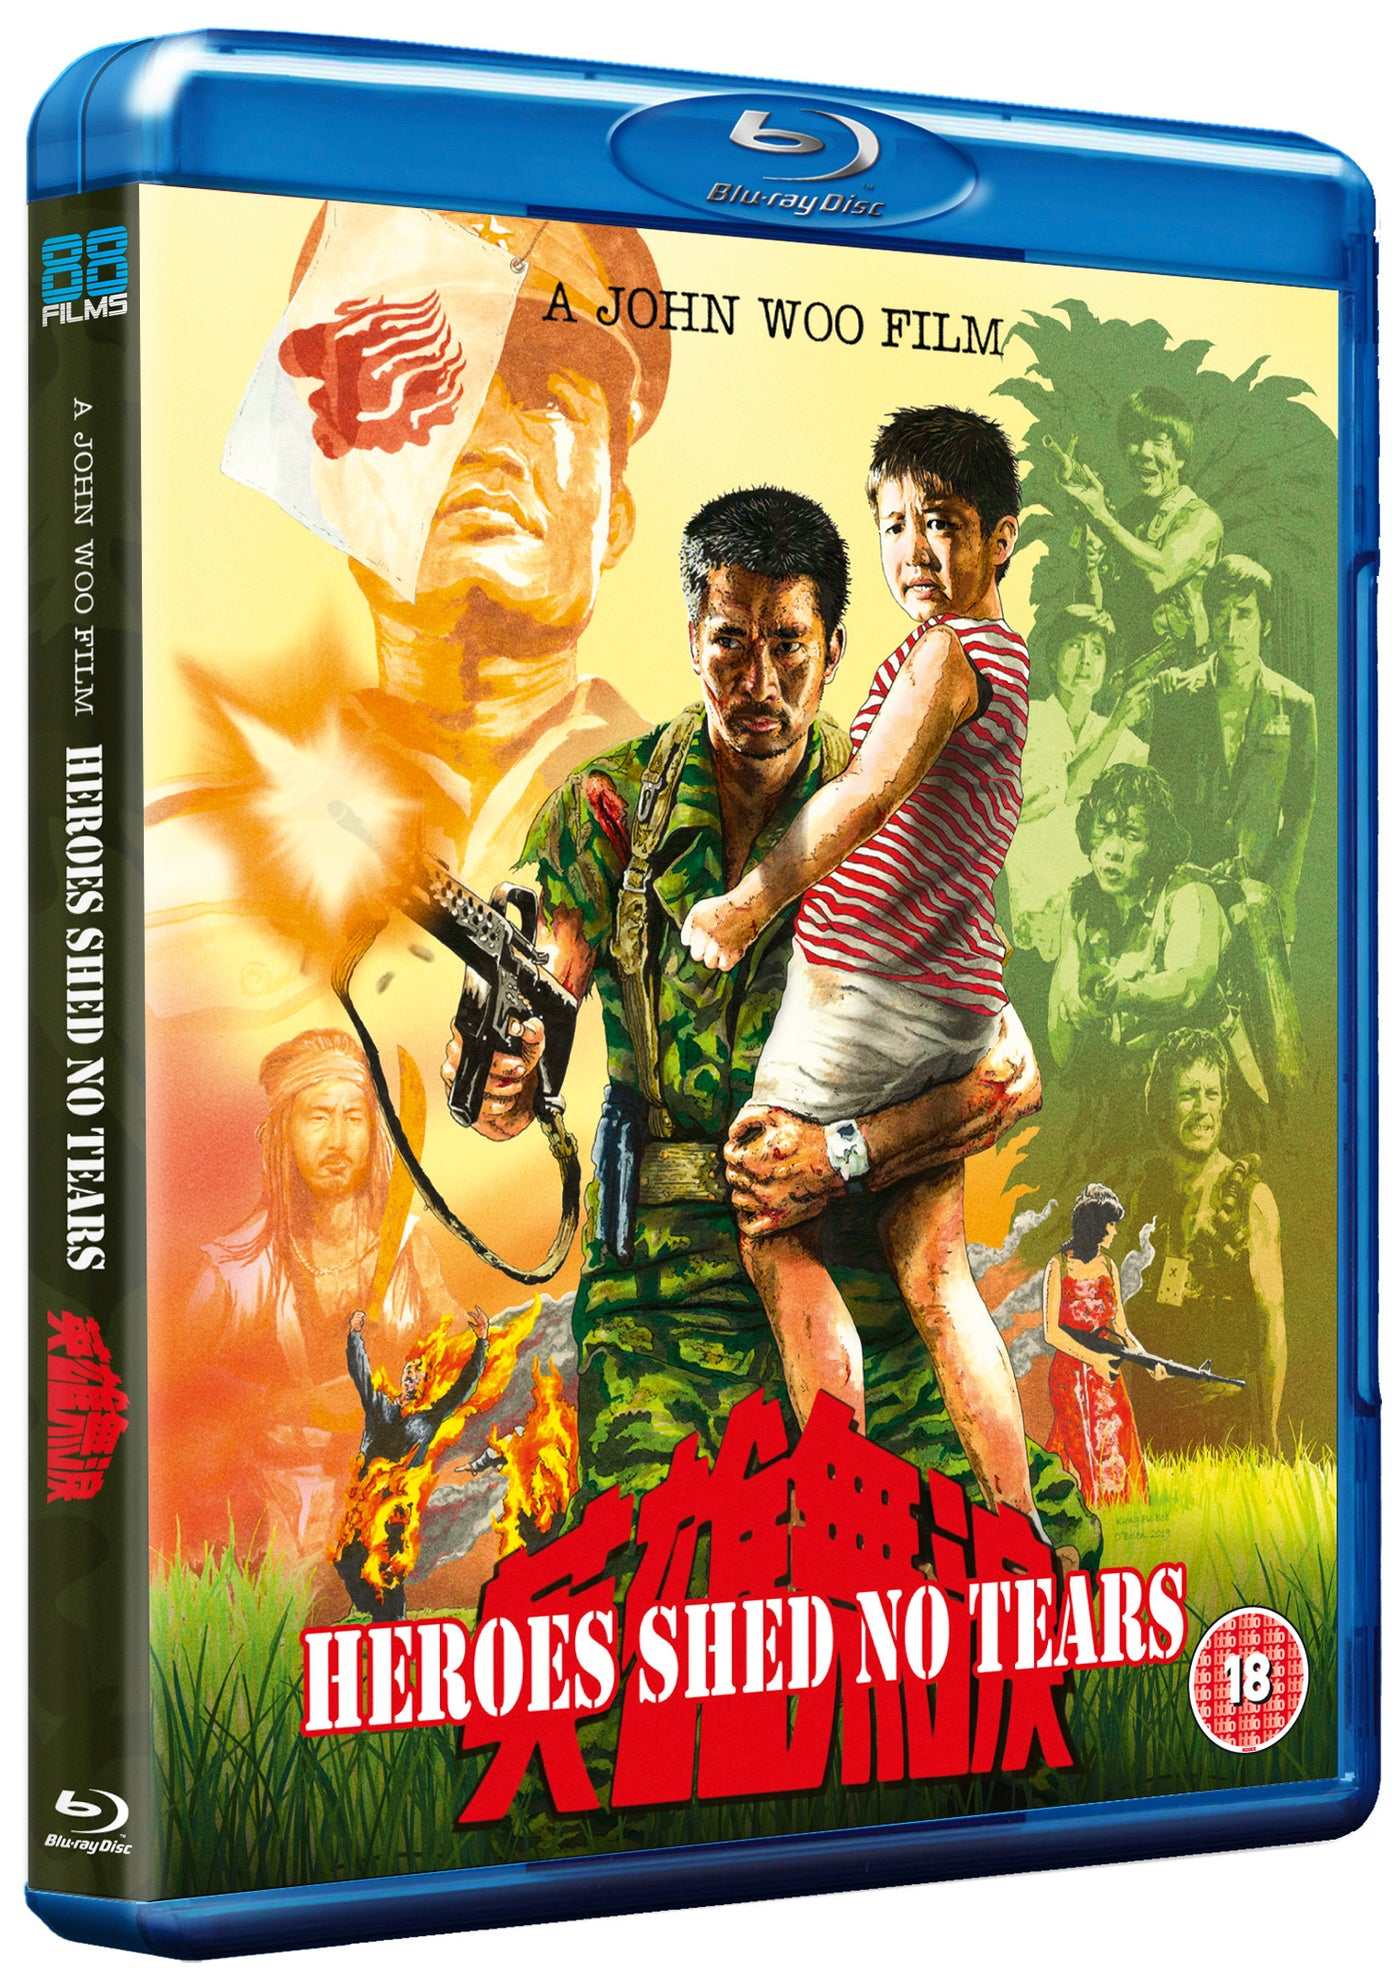 heroes shed no tears 1986 full movie free download